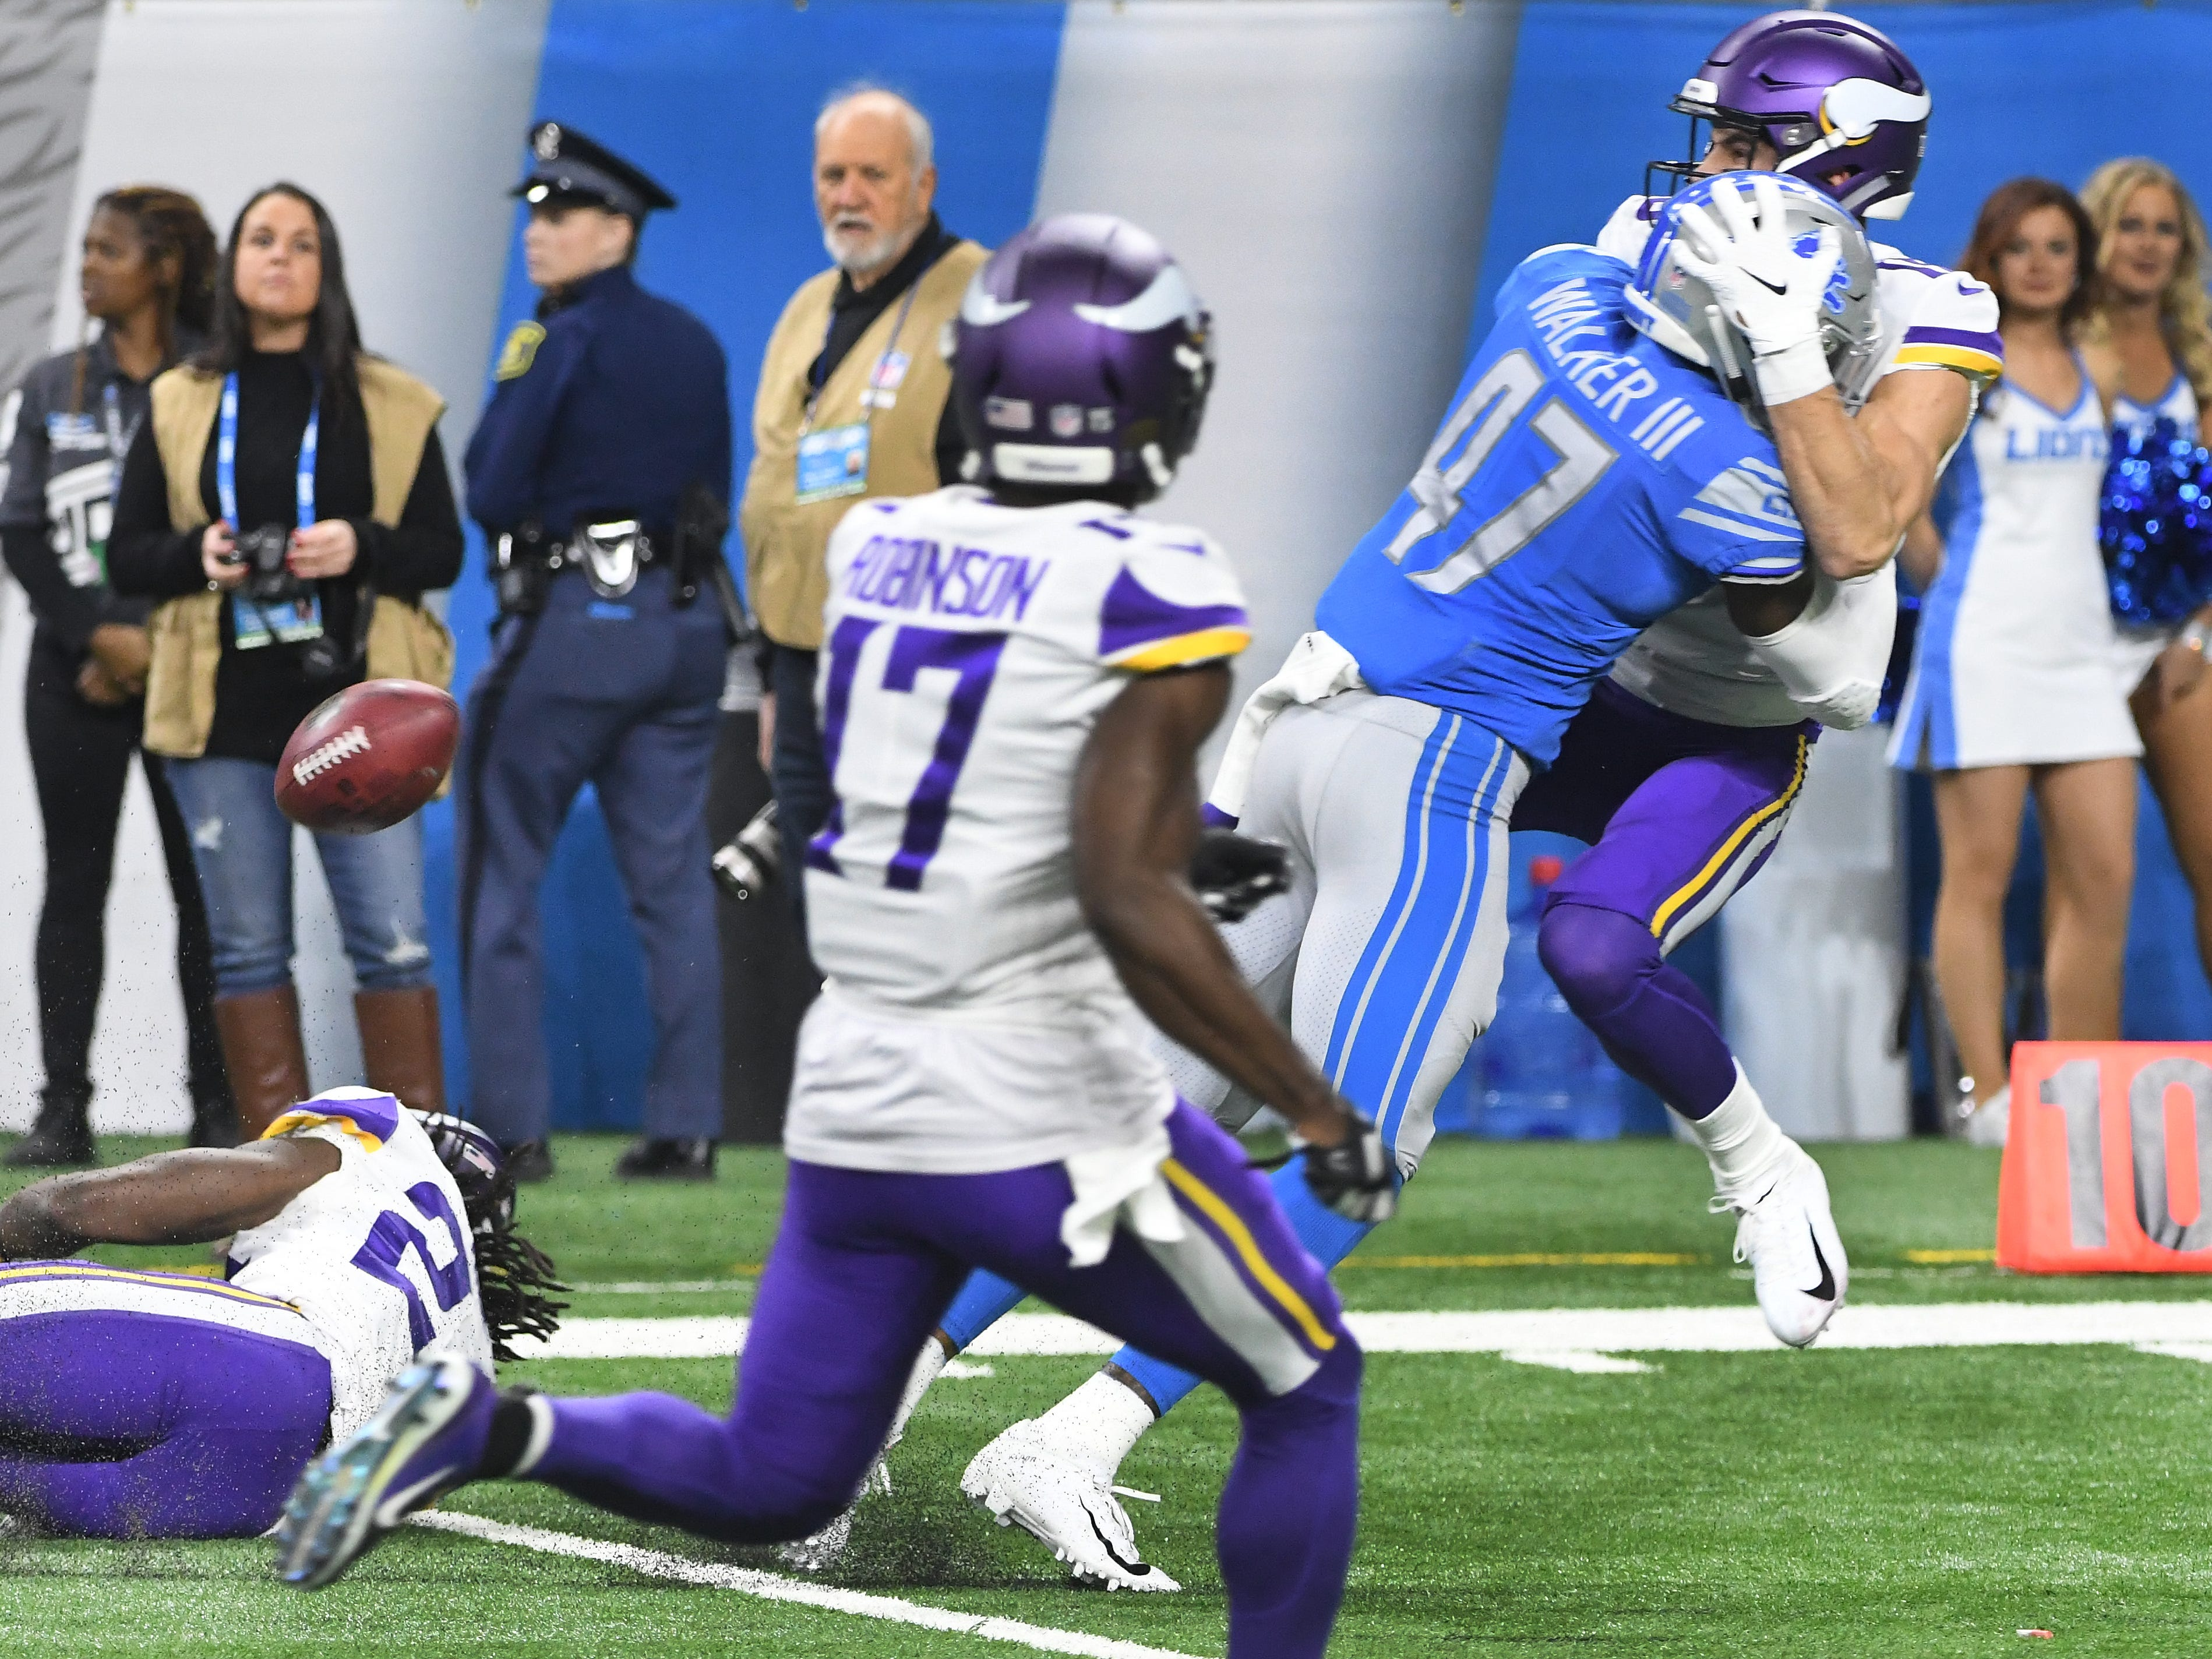 Lions' Tracy Walker picks up a 15 yard penalty hitting Vikings' Brandon Zylstra early on a punt return in the second quarter.